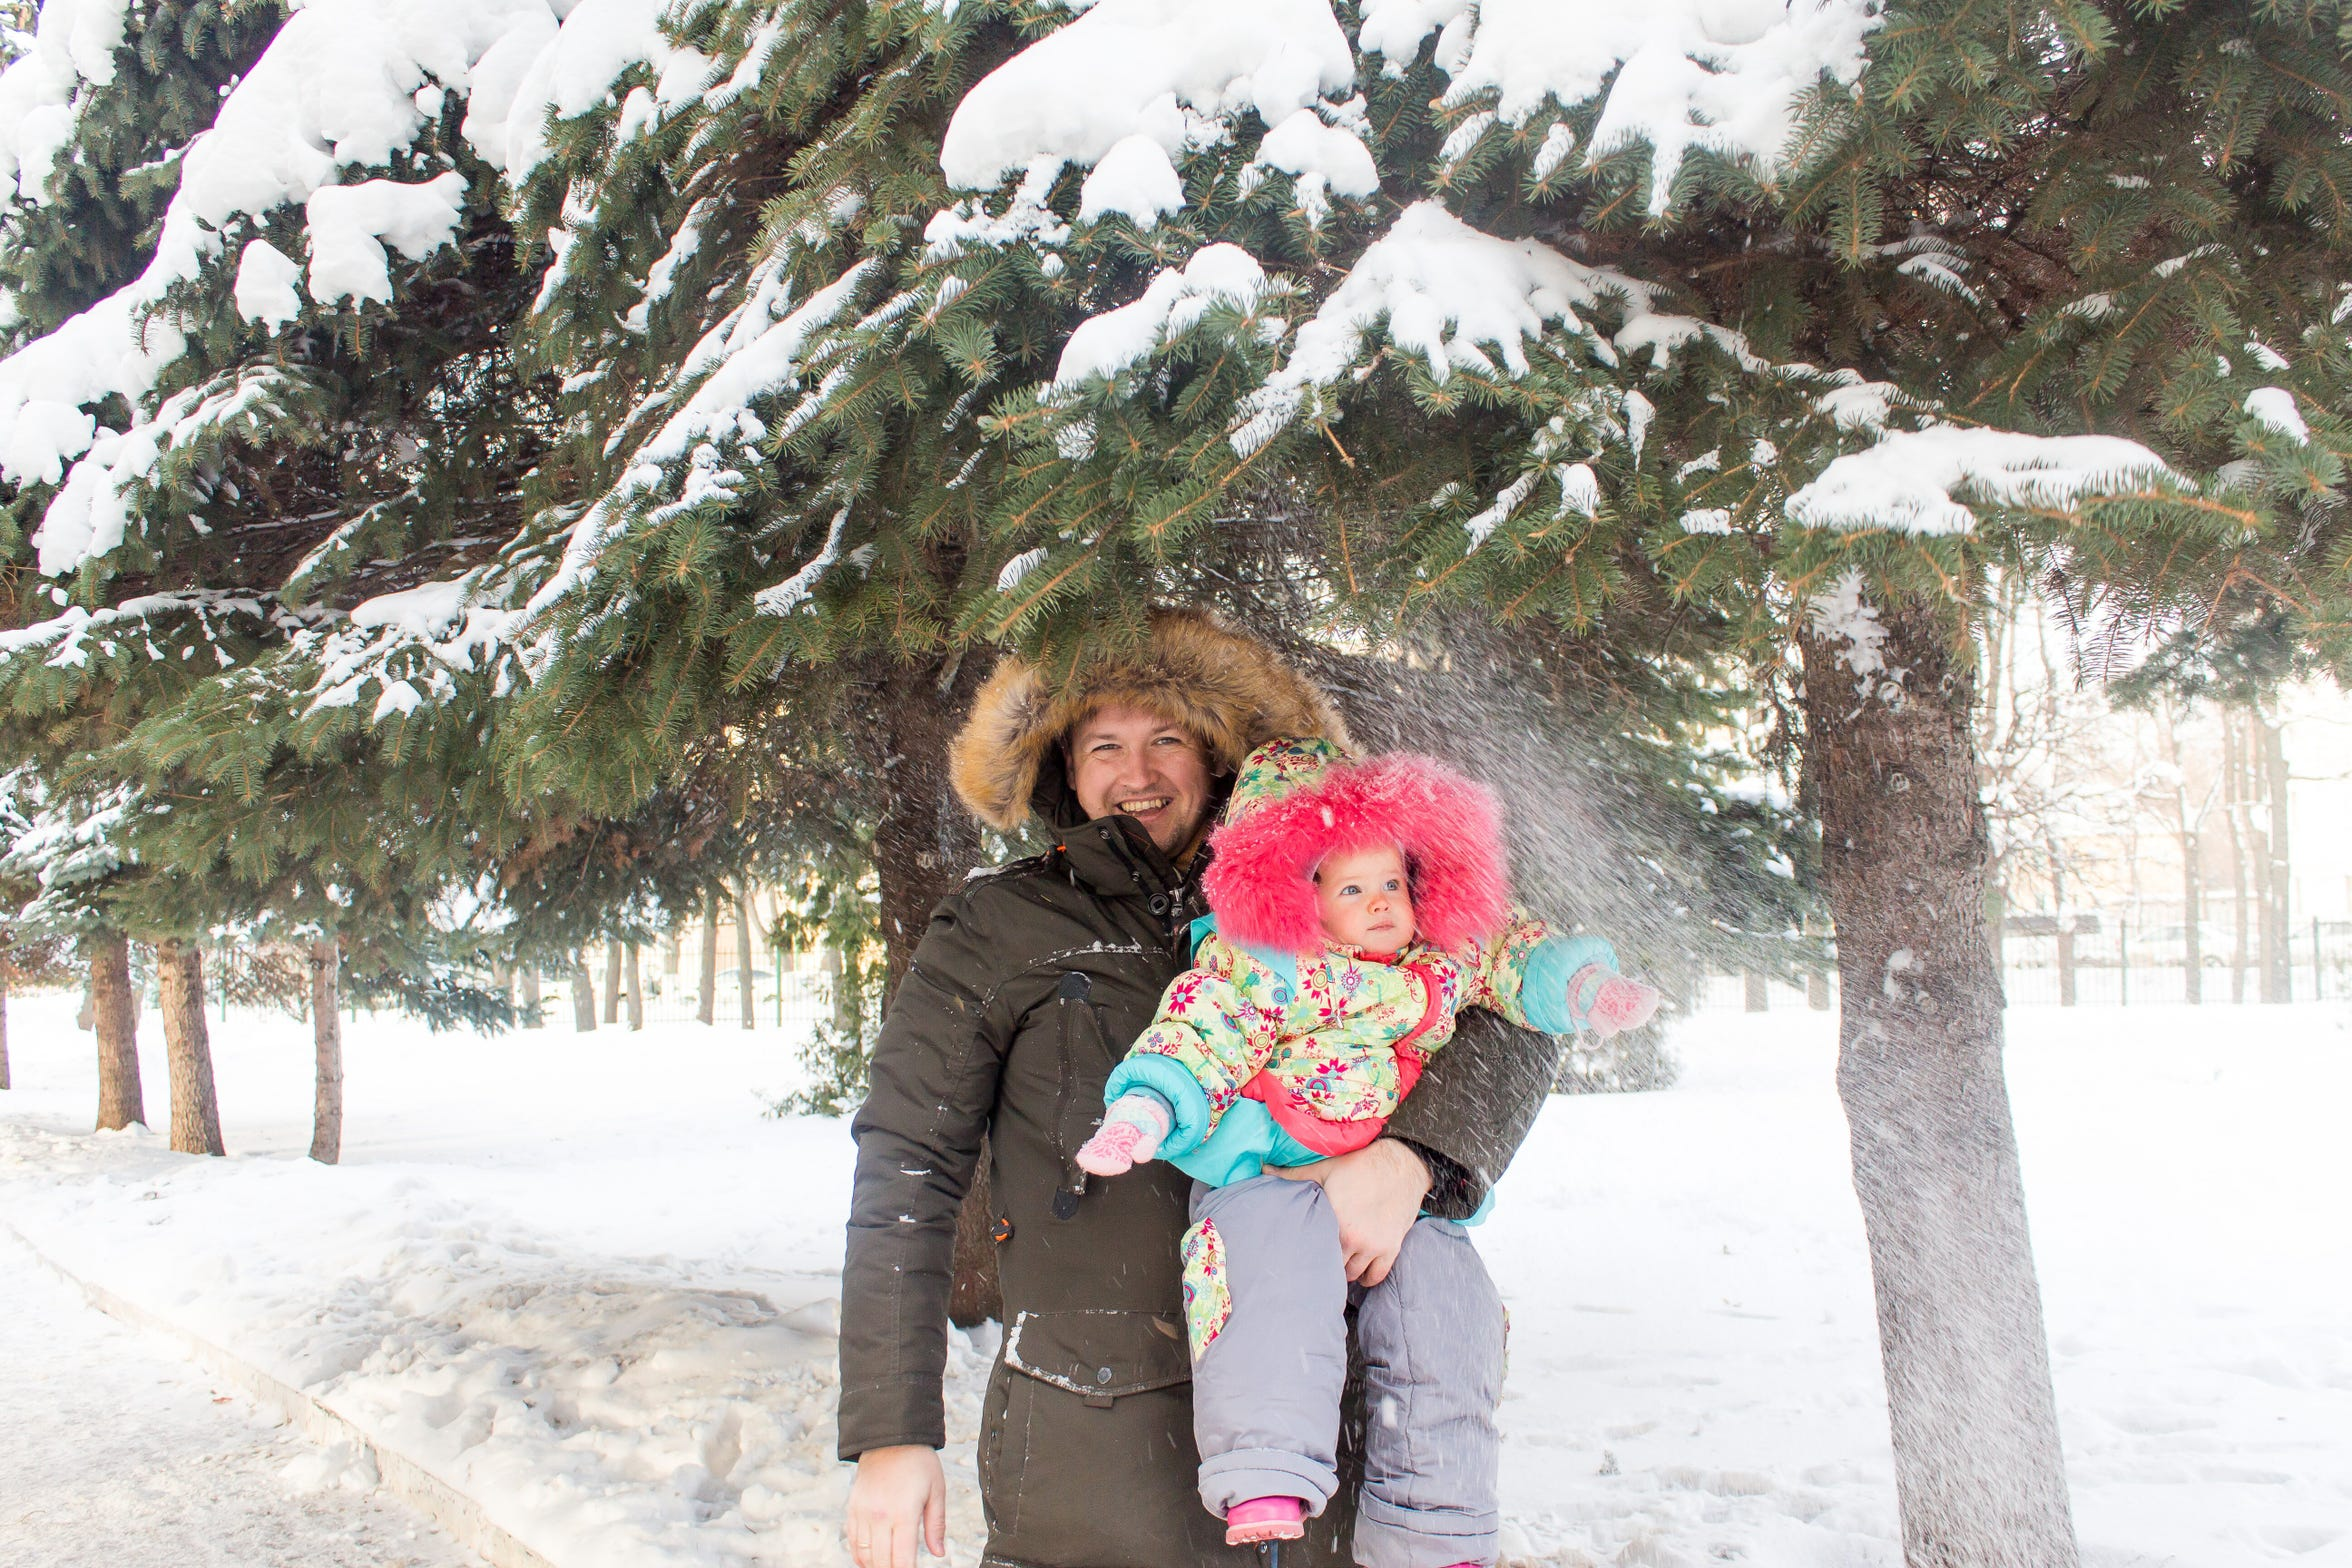 Pavel Alekseev with his daughter Maria in Russia.